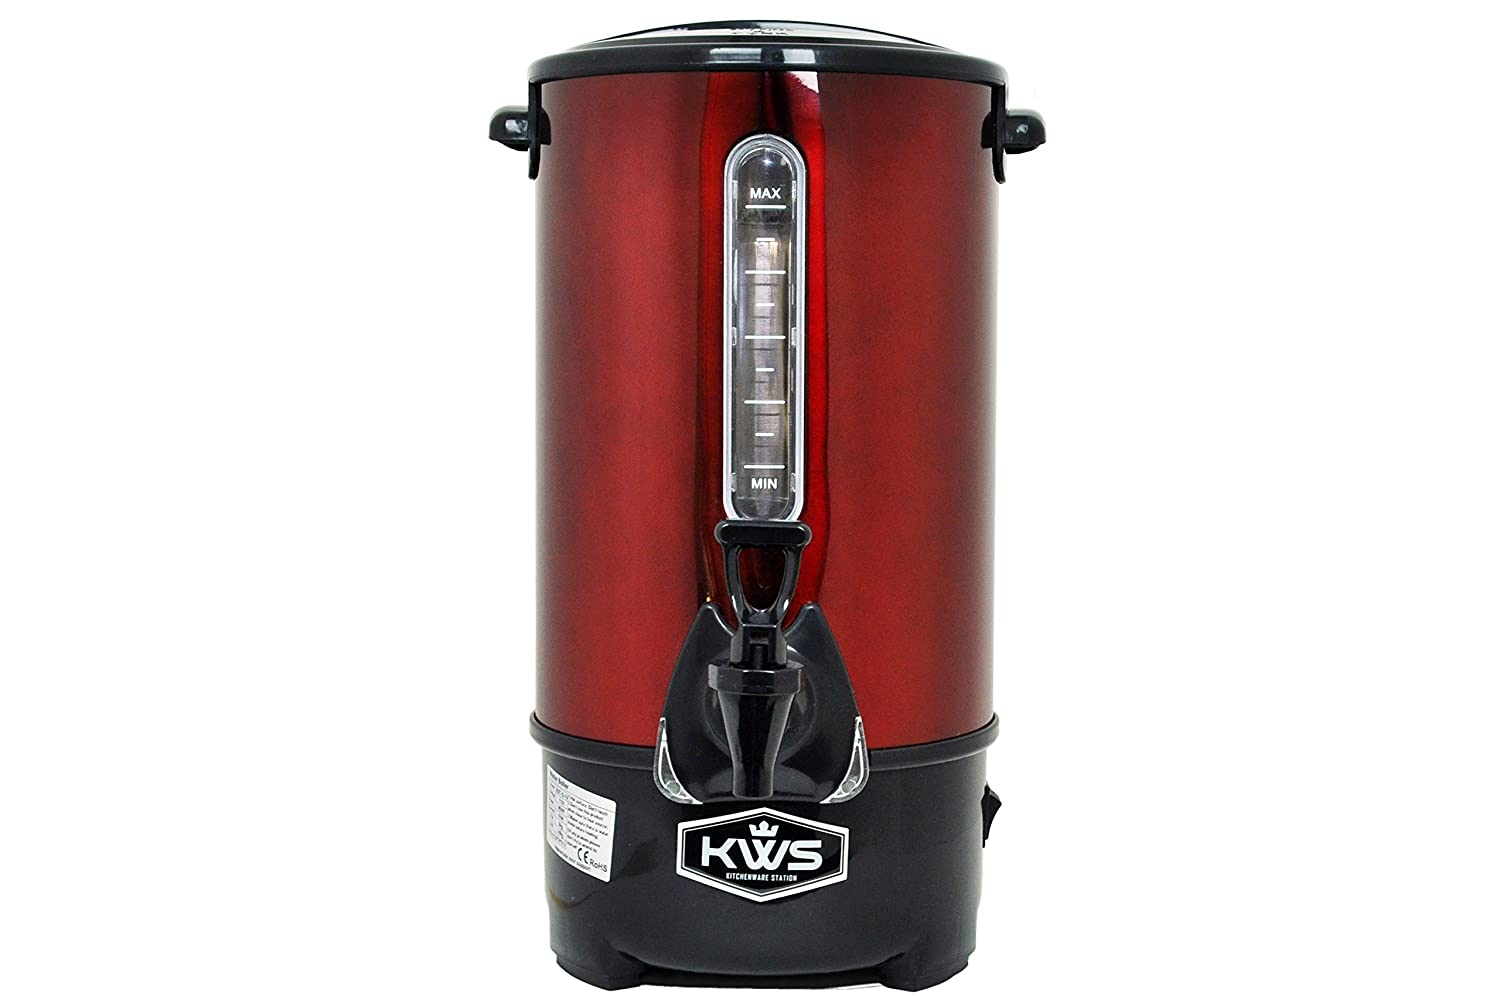 KWS WB-30 19.5L/ 83Cups Commercial Heat Insulated Water Boiler and Warmer Stainless Steel (Blue) KitchenWare Station WBB-30